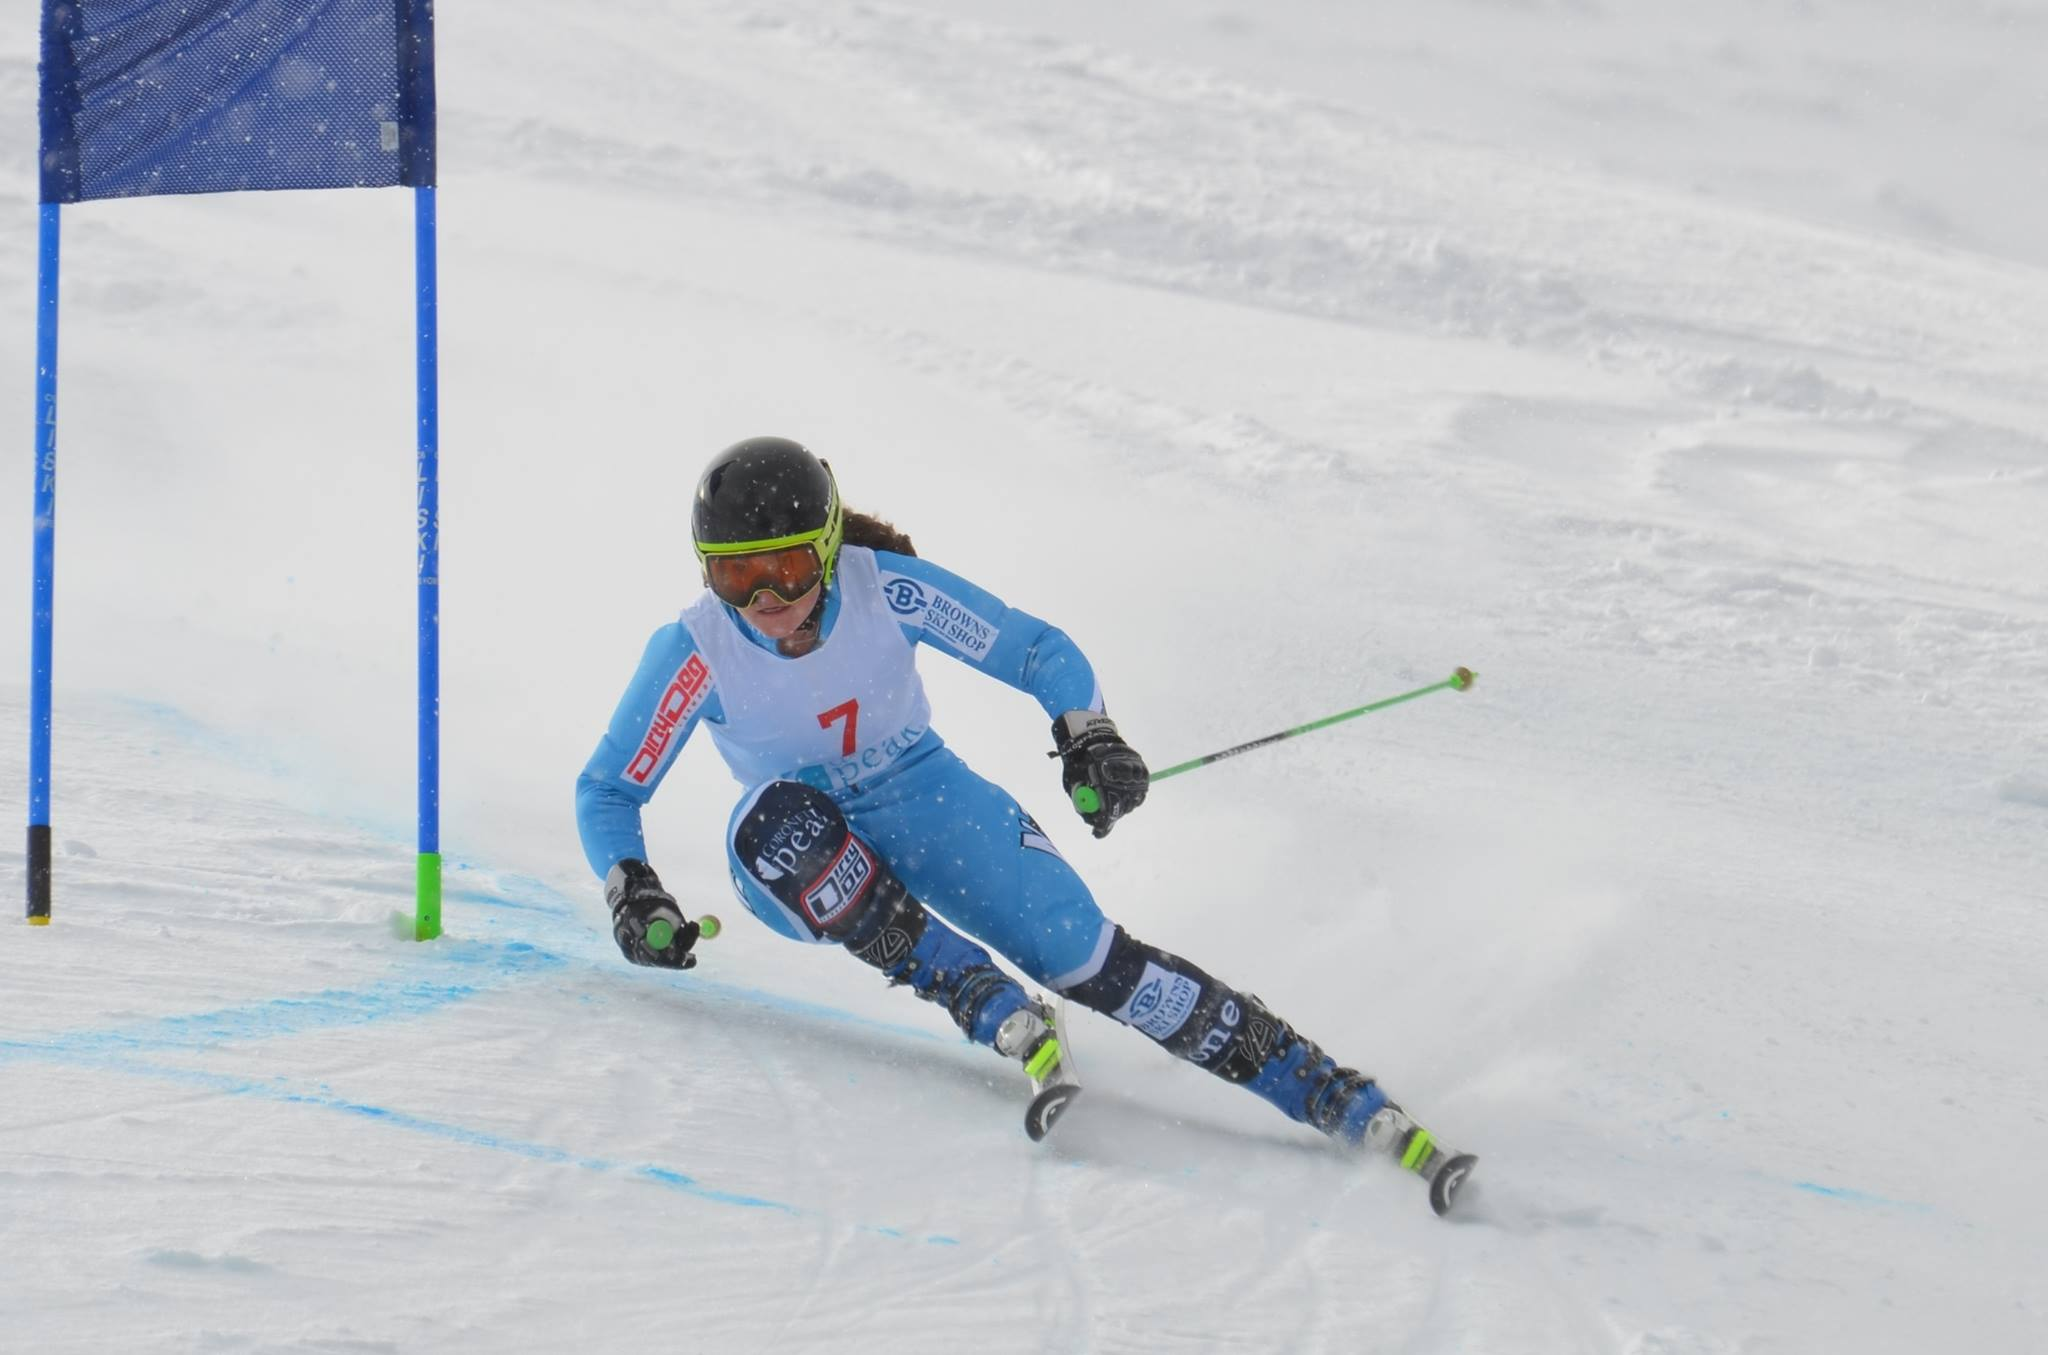 GS Nationals 2015 Photo cred: Anne Barwood